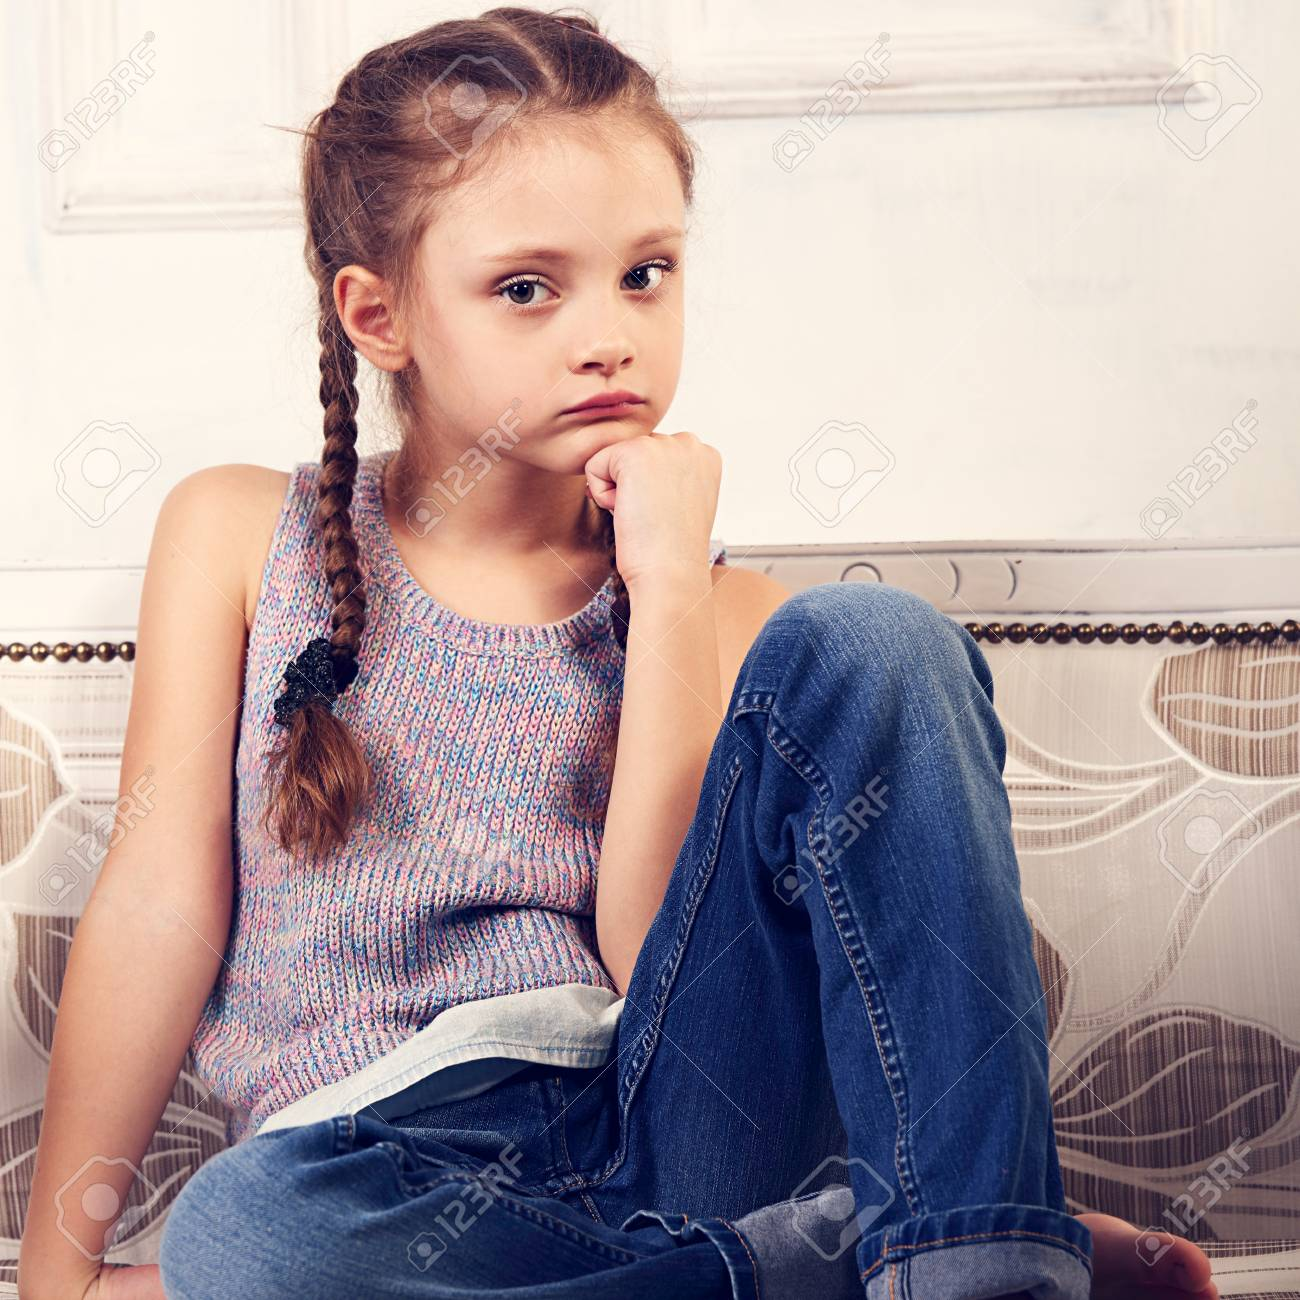 78e37e830 Beautiful calm thinking unhappy kid girl sitting on the bench in blue jeans  and fashion blouse